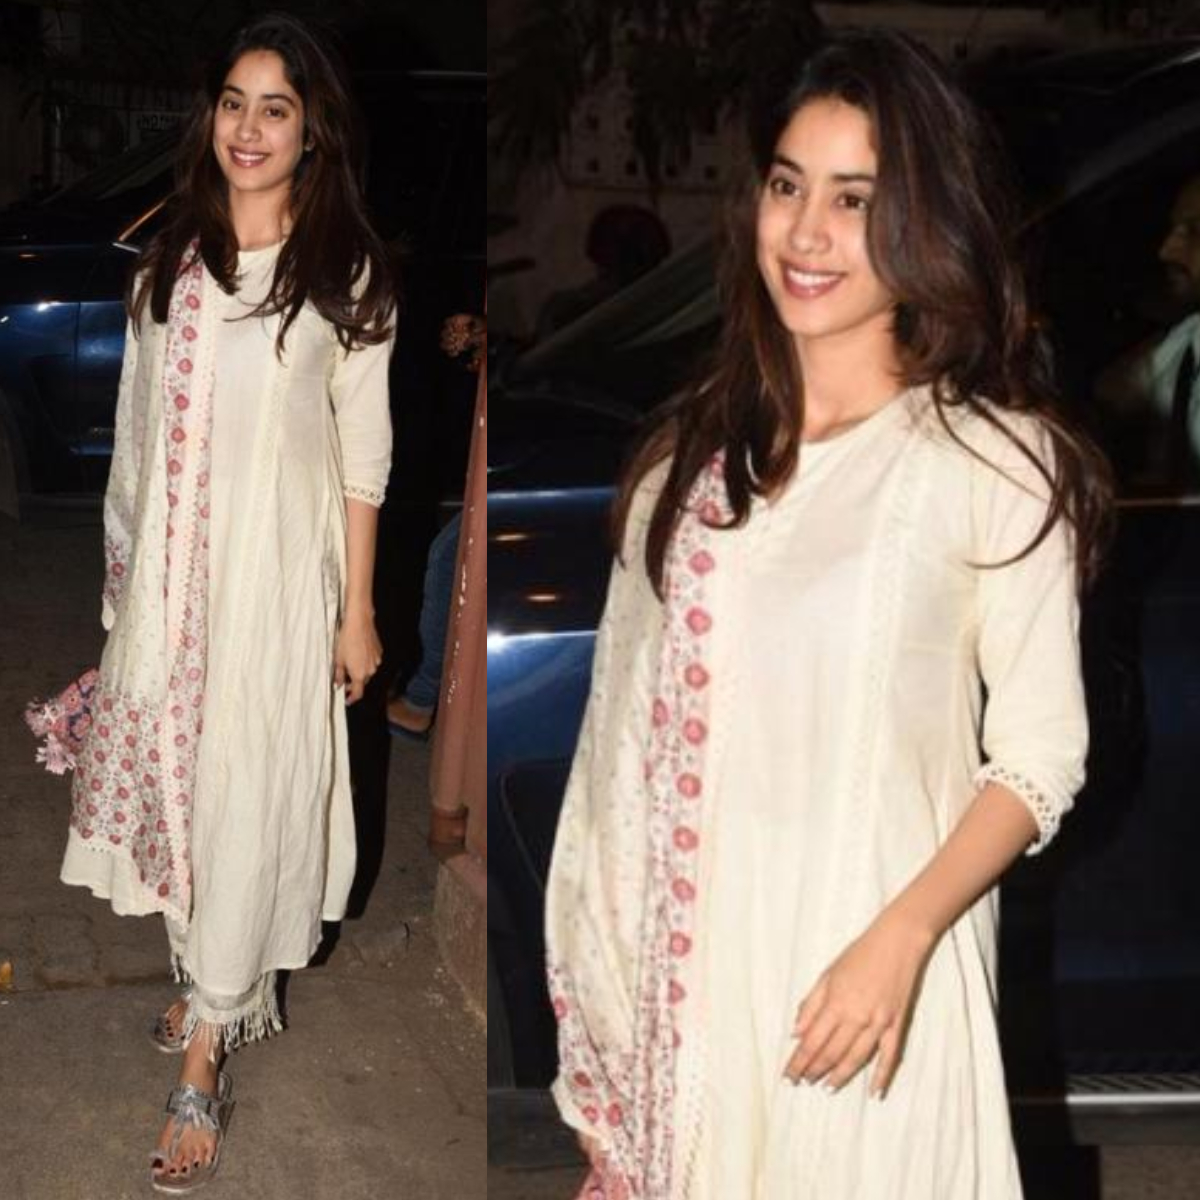 Janhvi Kapoor picks out yet another desi outfit with a floral touch: Yay or Nay?